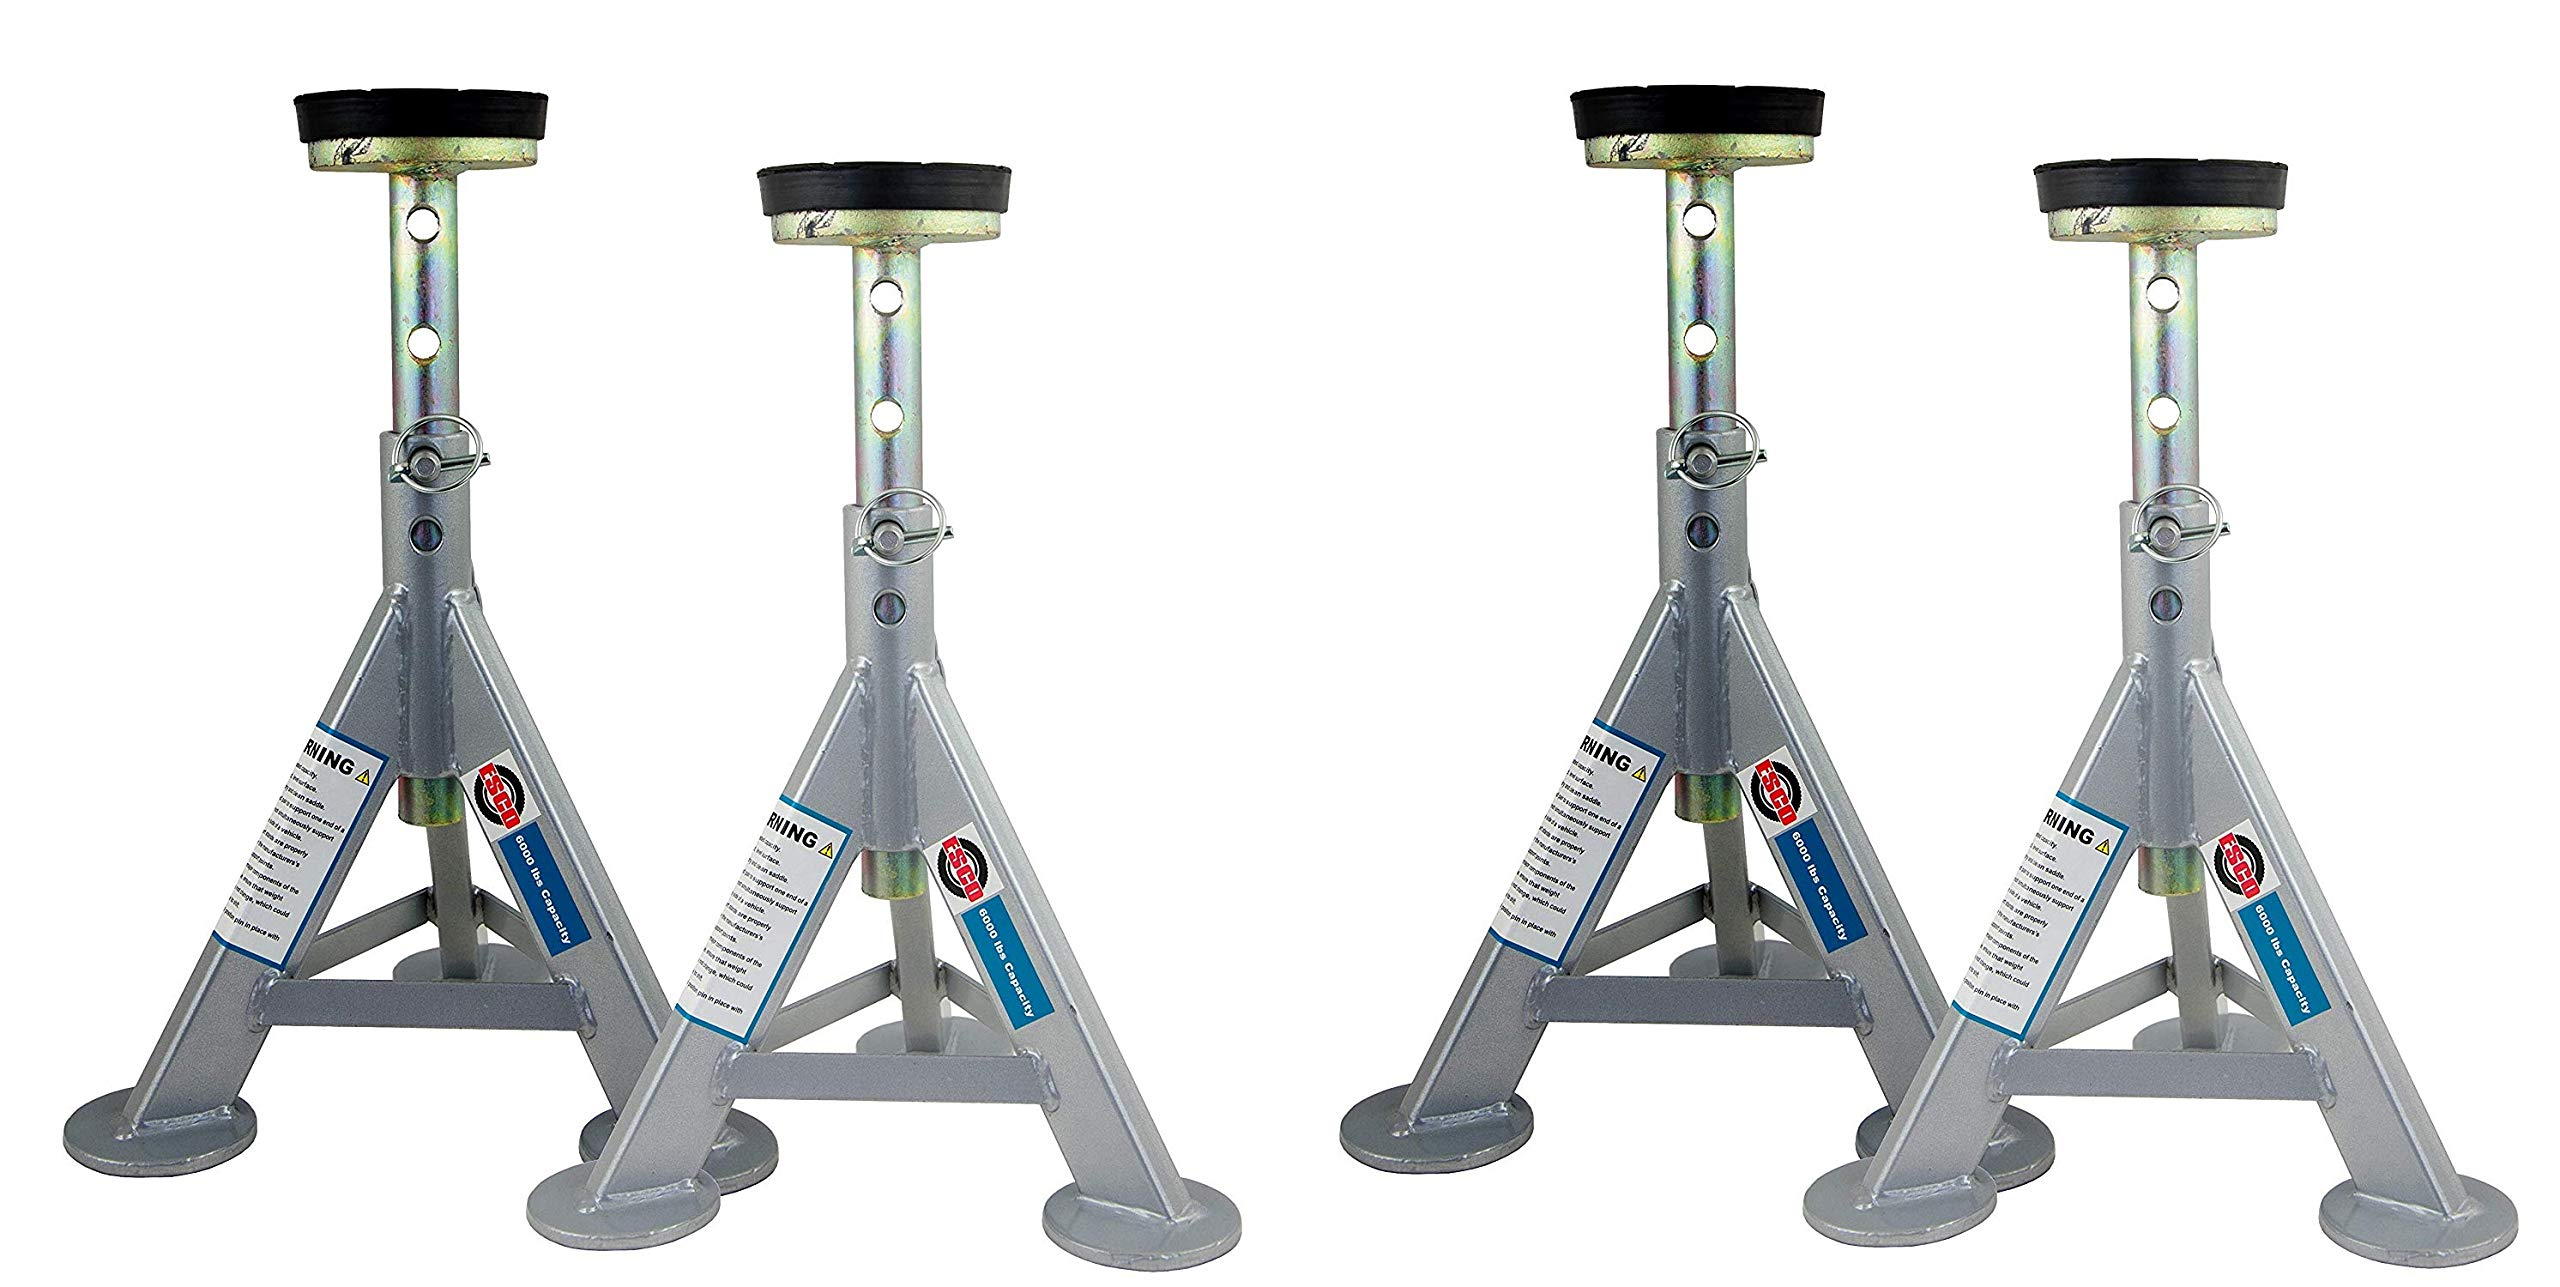 ESCO 10498 Jack Stands, 3 Ton Capacity, Pair of 2 Stands (Pack of 2) (2 X Pack of 2)